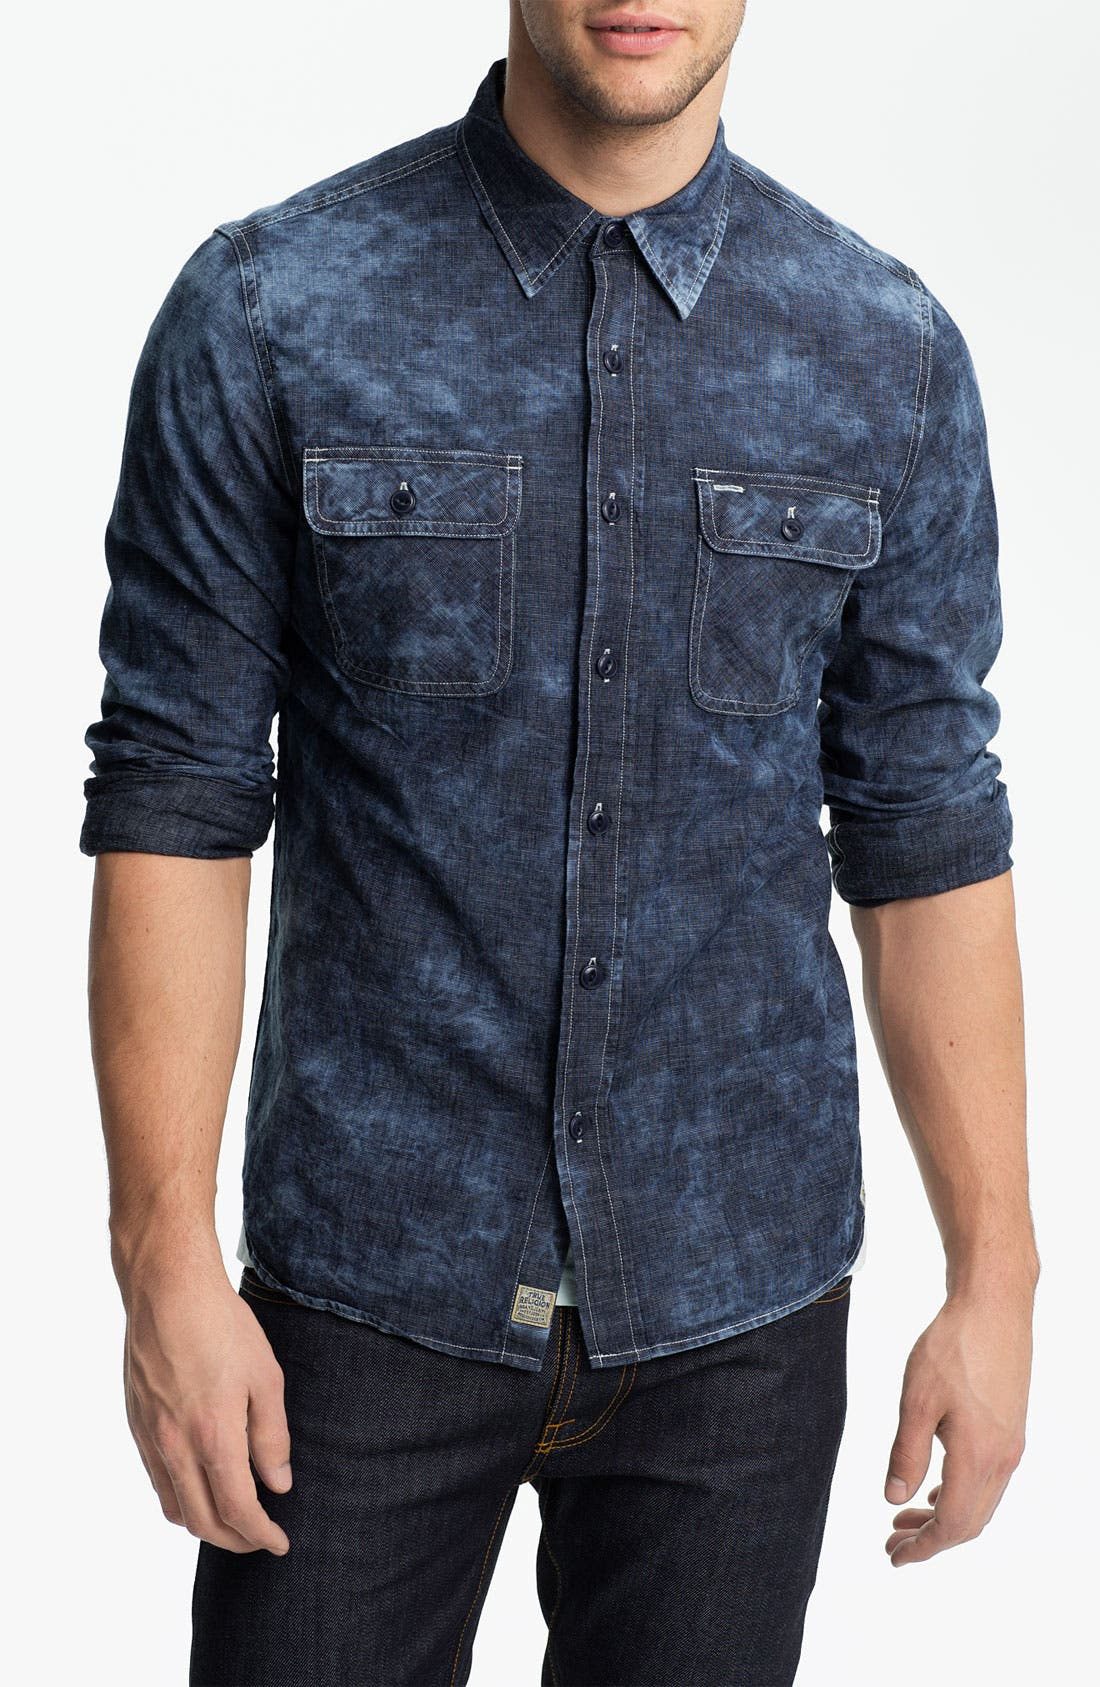 Alternate Image 1 Selected - True Religion Brand Jeans Workwear Denim Shirt